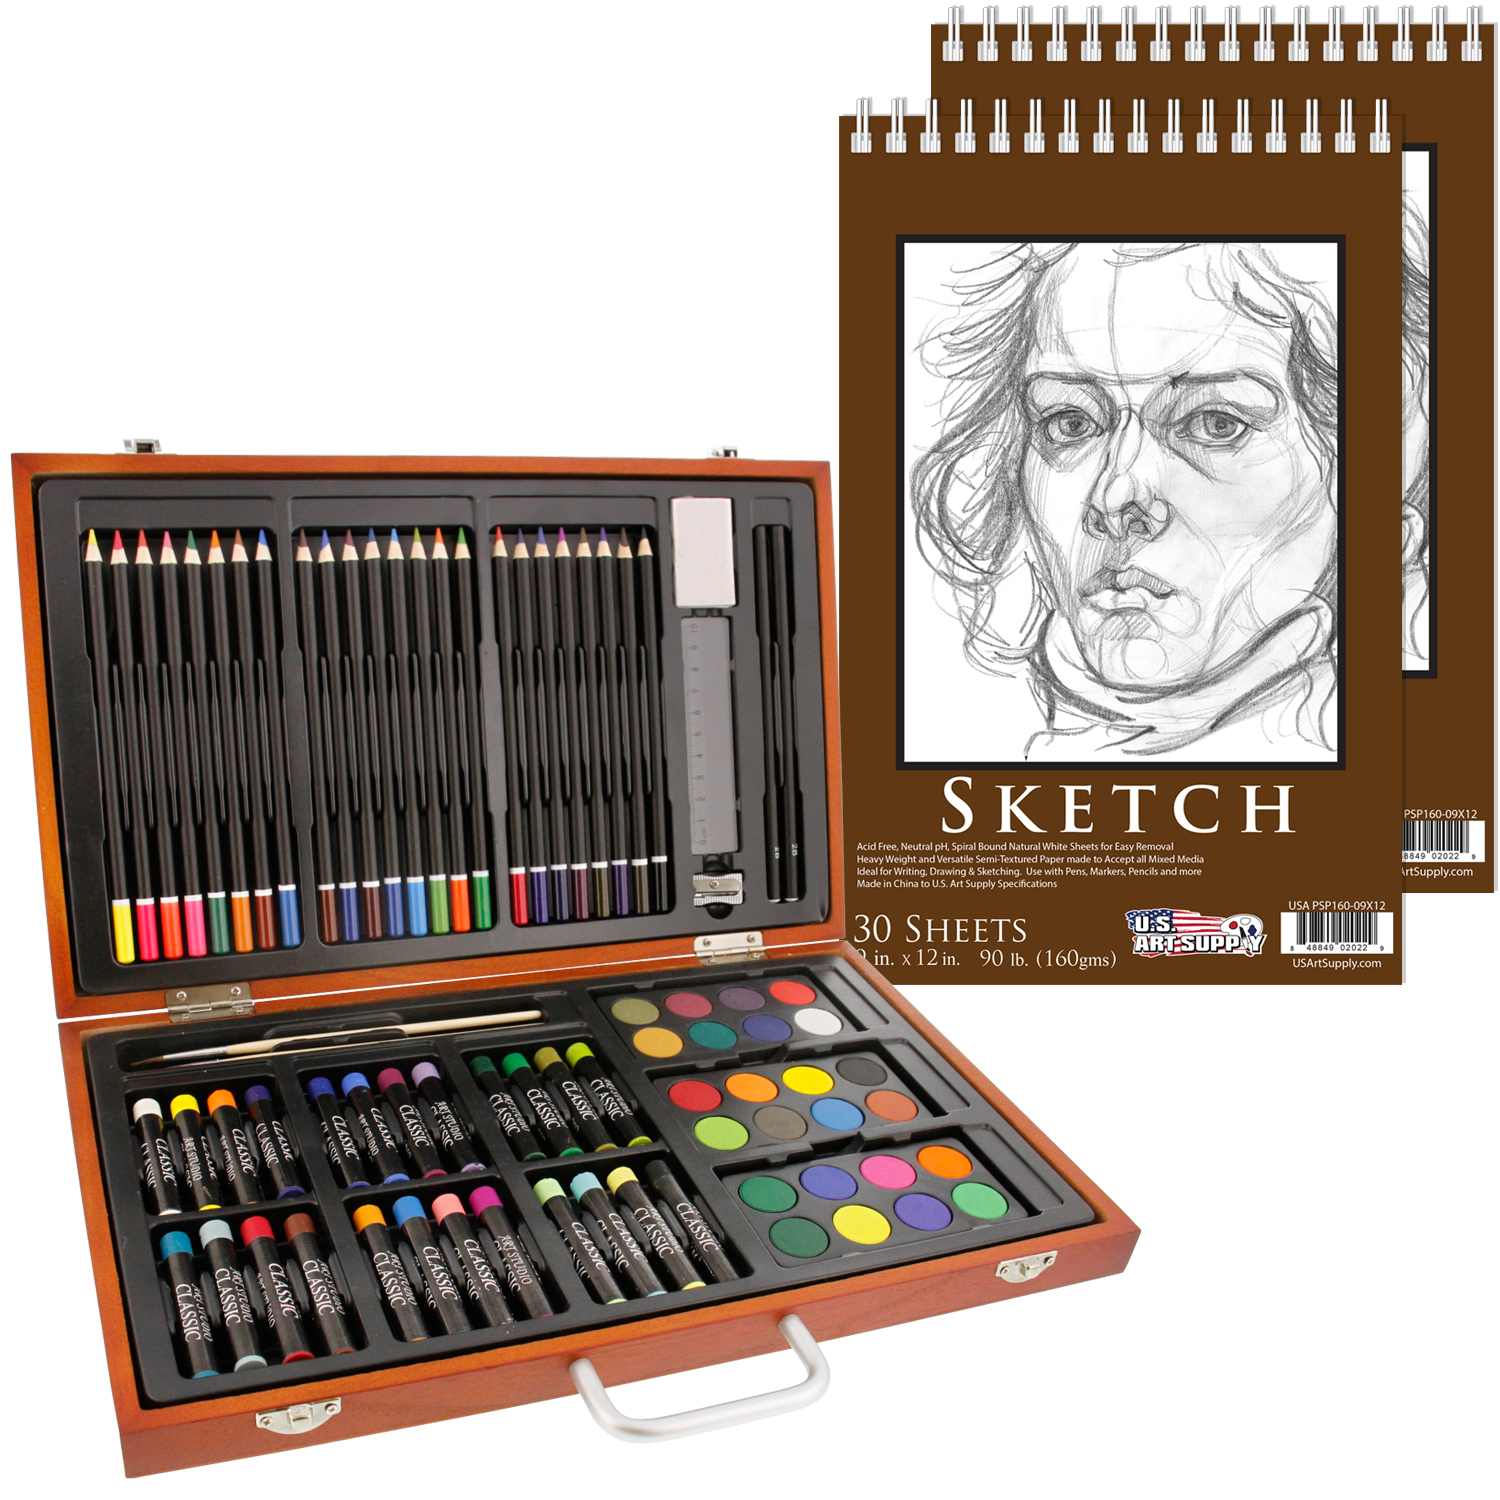 "US Art Supply 80 Piece Deluxe Art Creativity Set in Wooden Case with 9""x12"" 90lb 30 Sheet Sketch Pad"